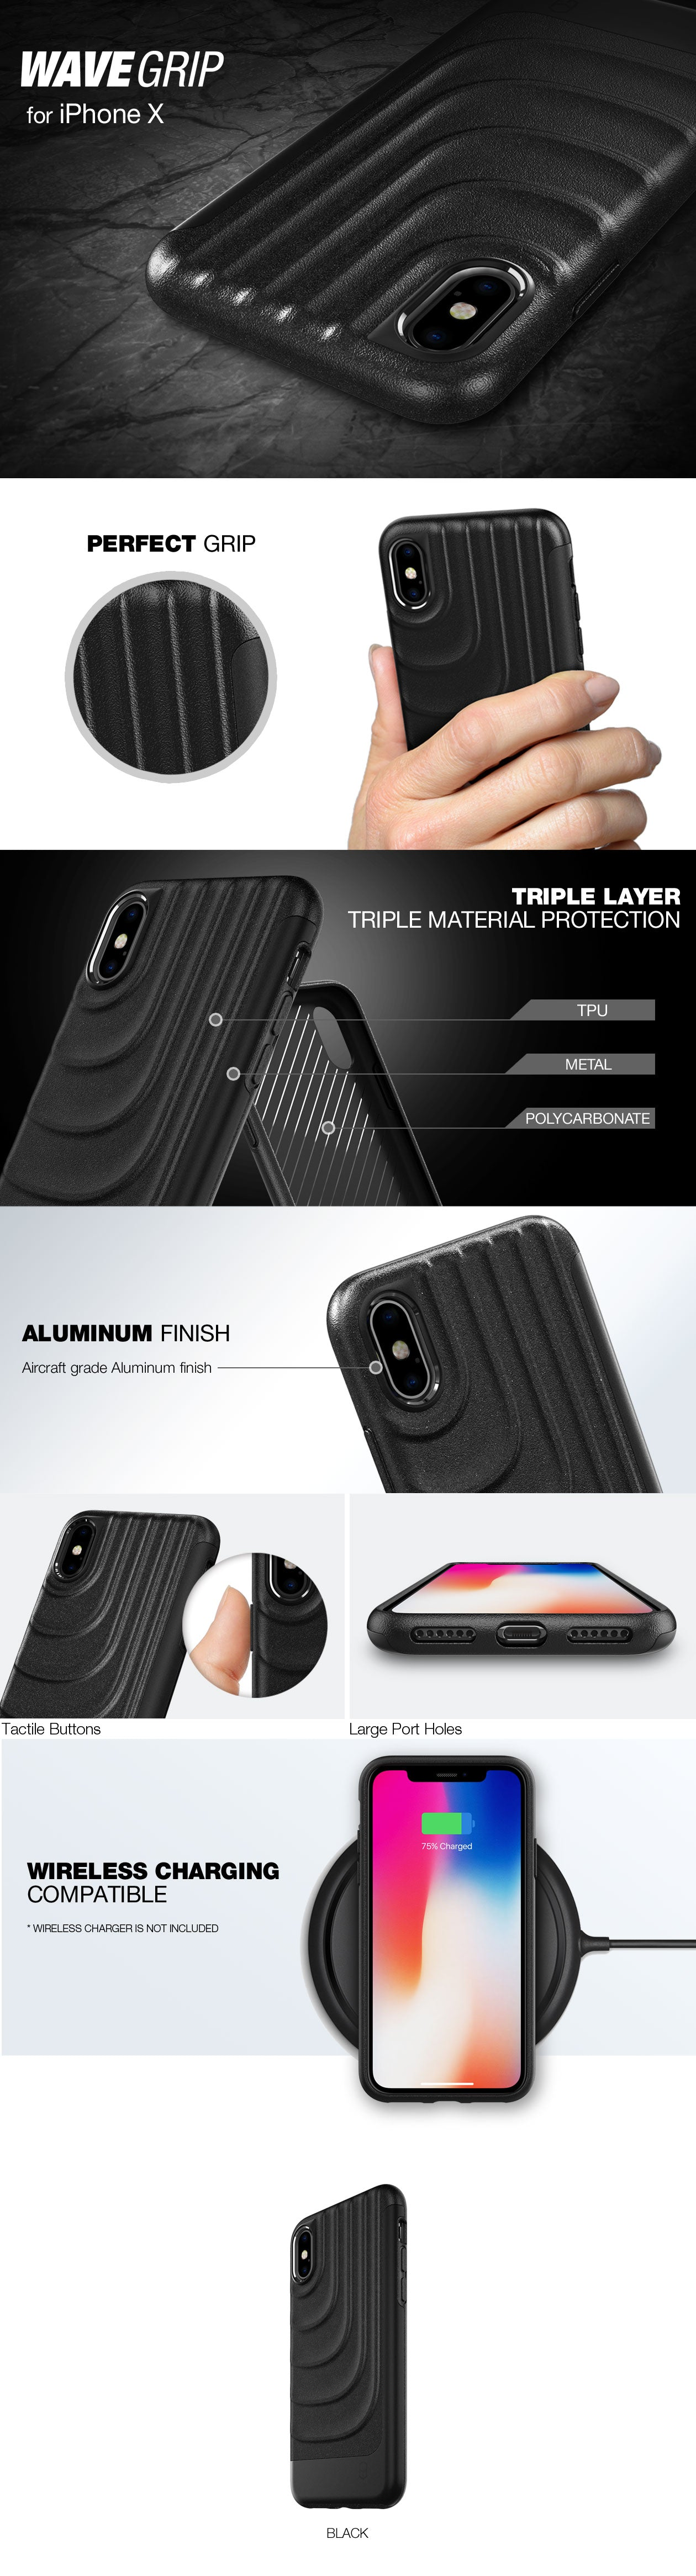 Patchworks Wavegrip case for iPhone X